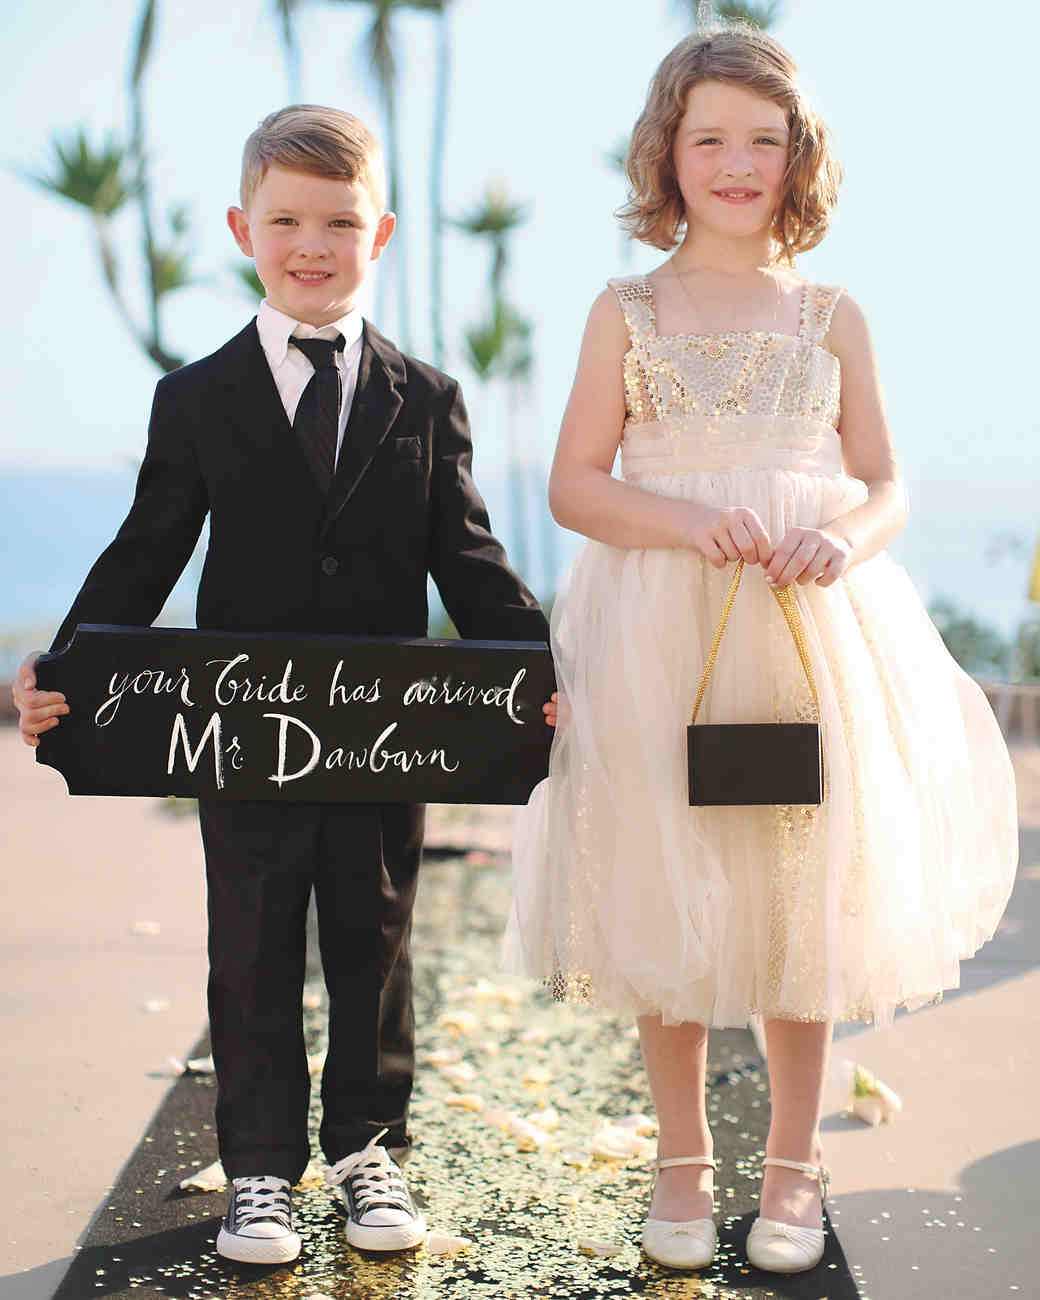 ring-bearer-flower-girl-001-mwd109359.jpg